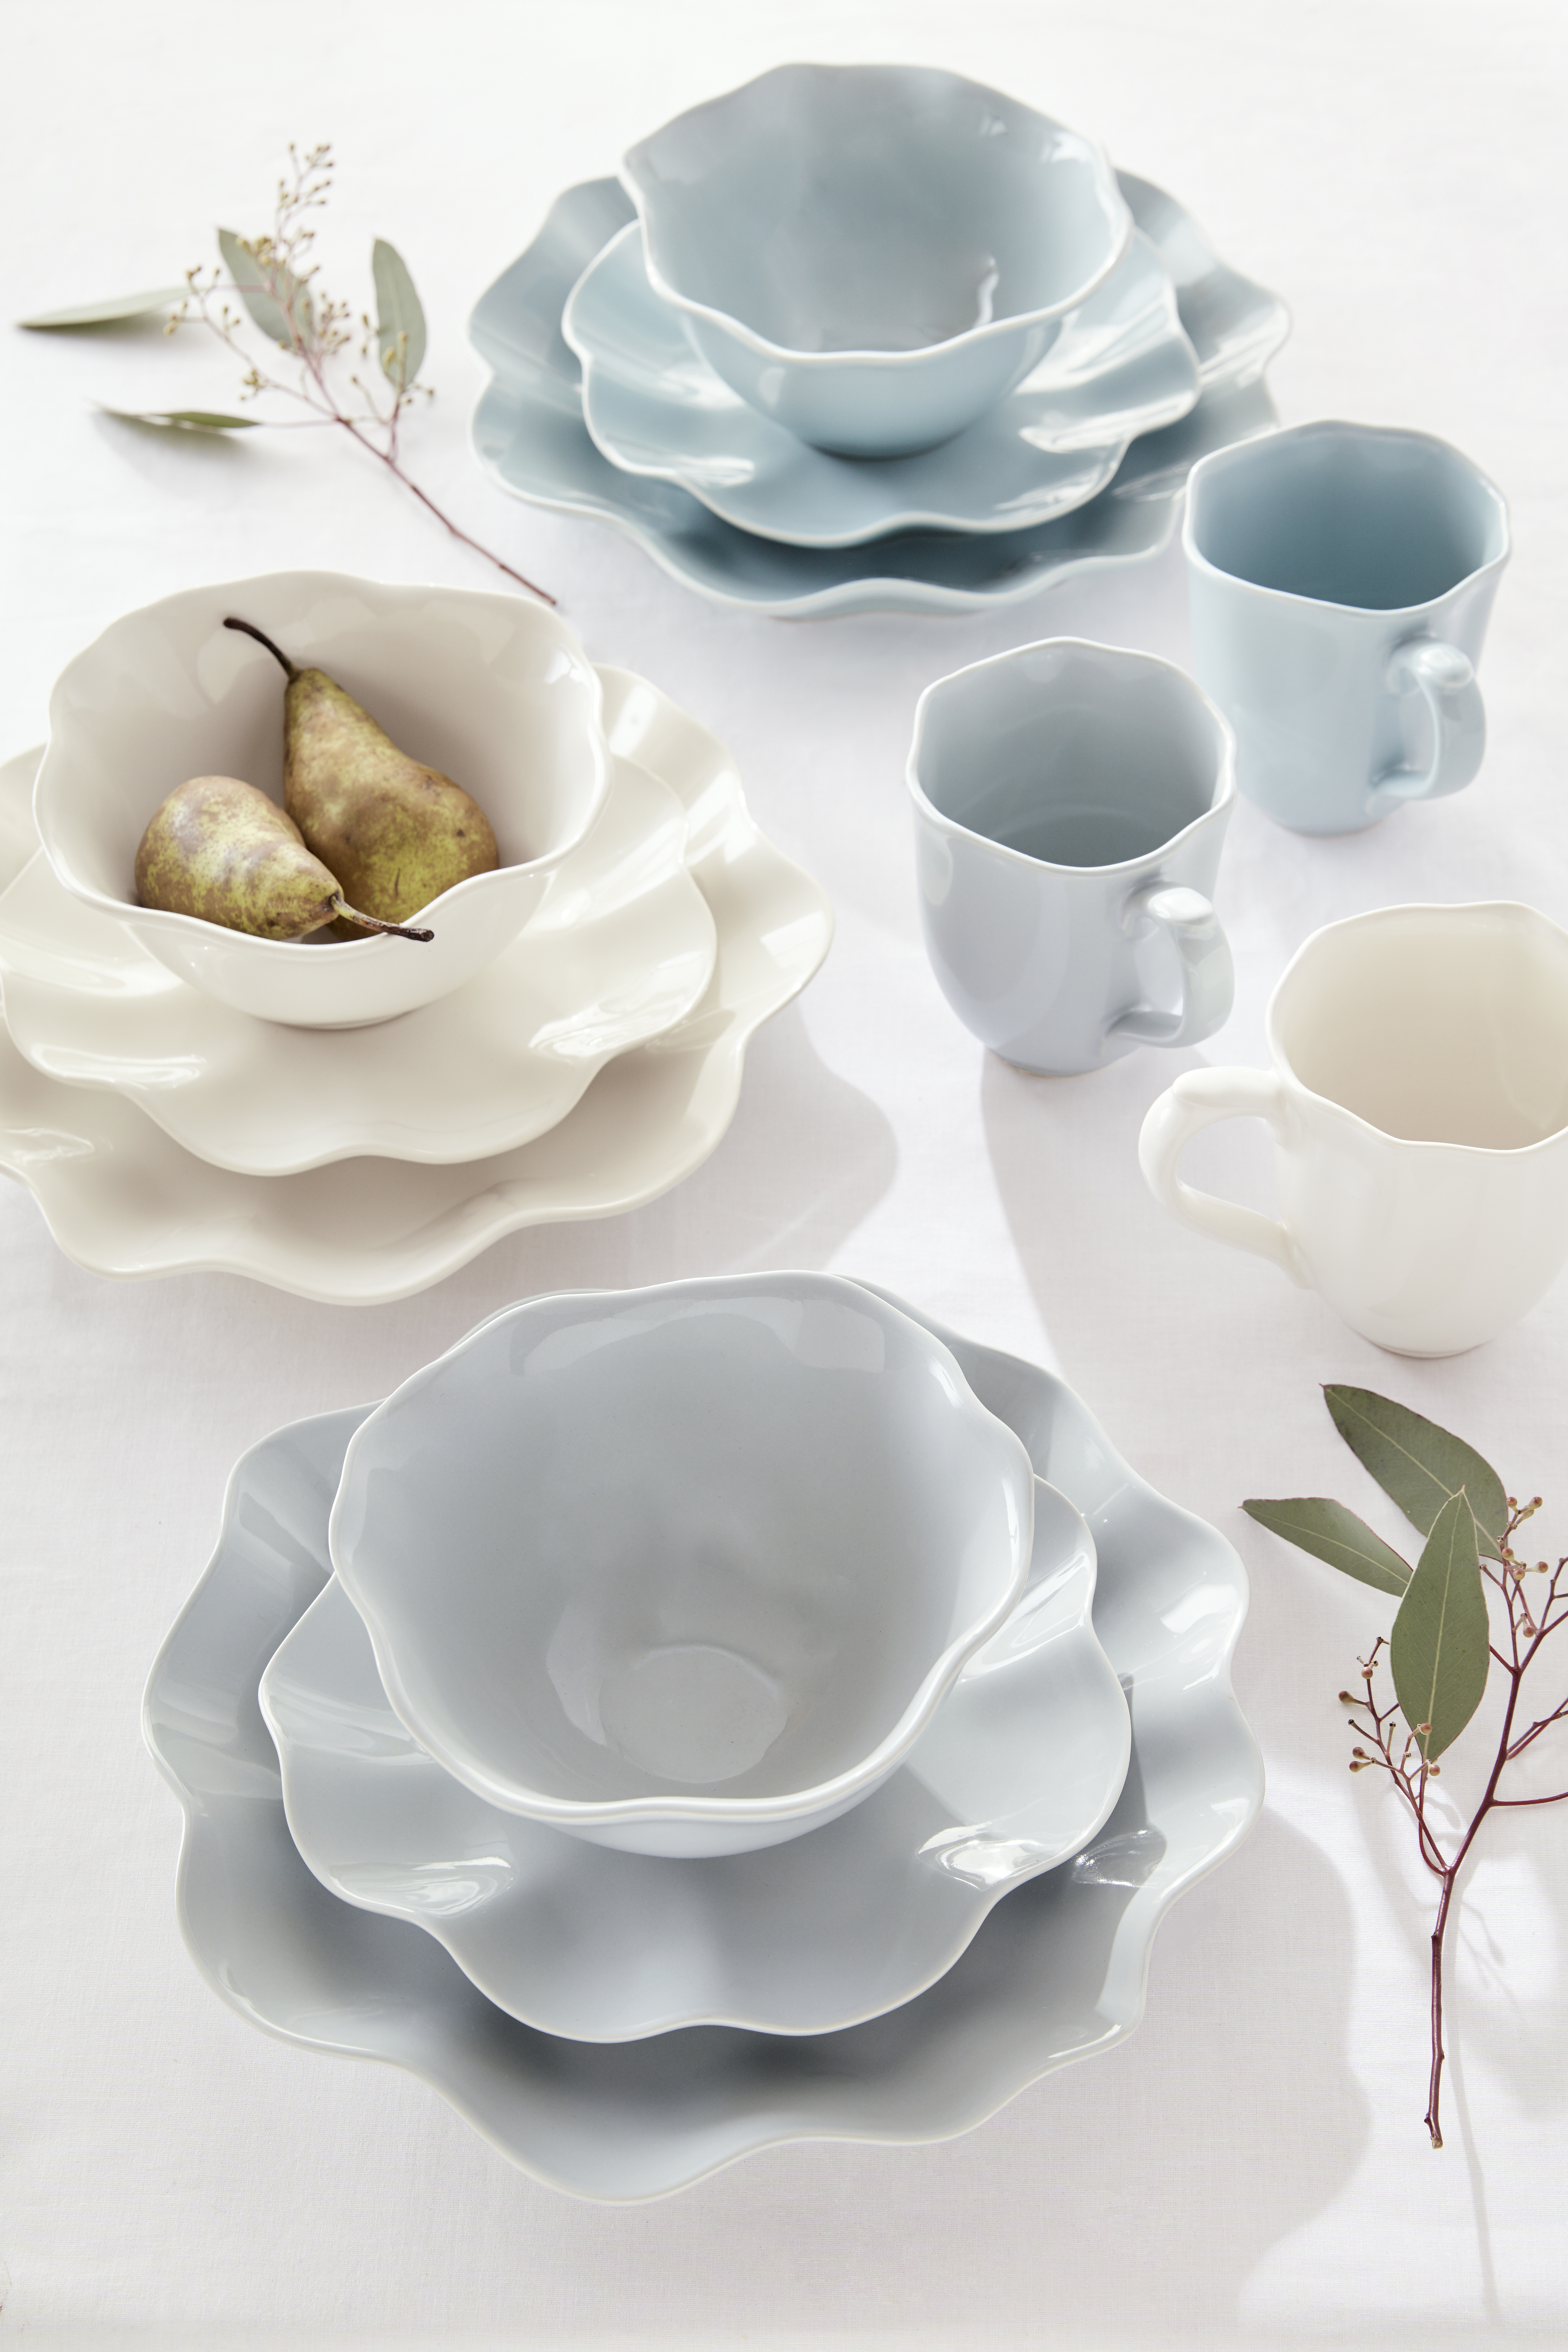 Sophie Conran Floret 4 Piece Place Setting- Dove Grey image number 2